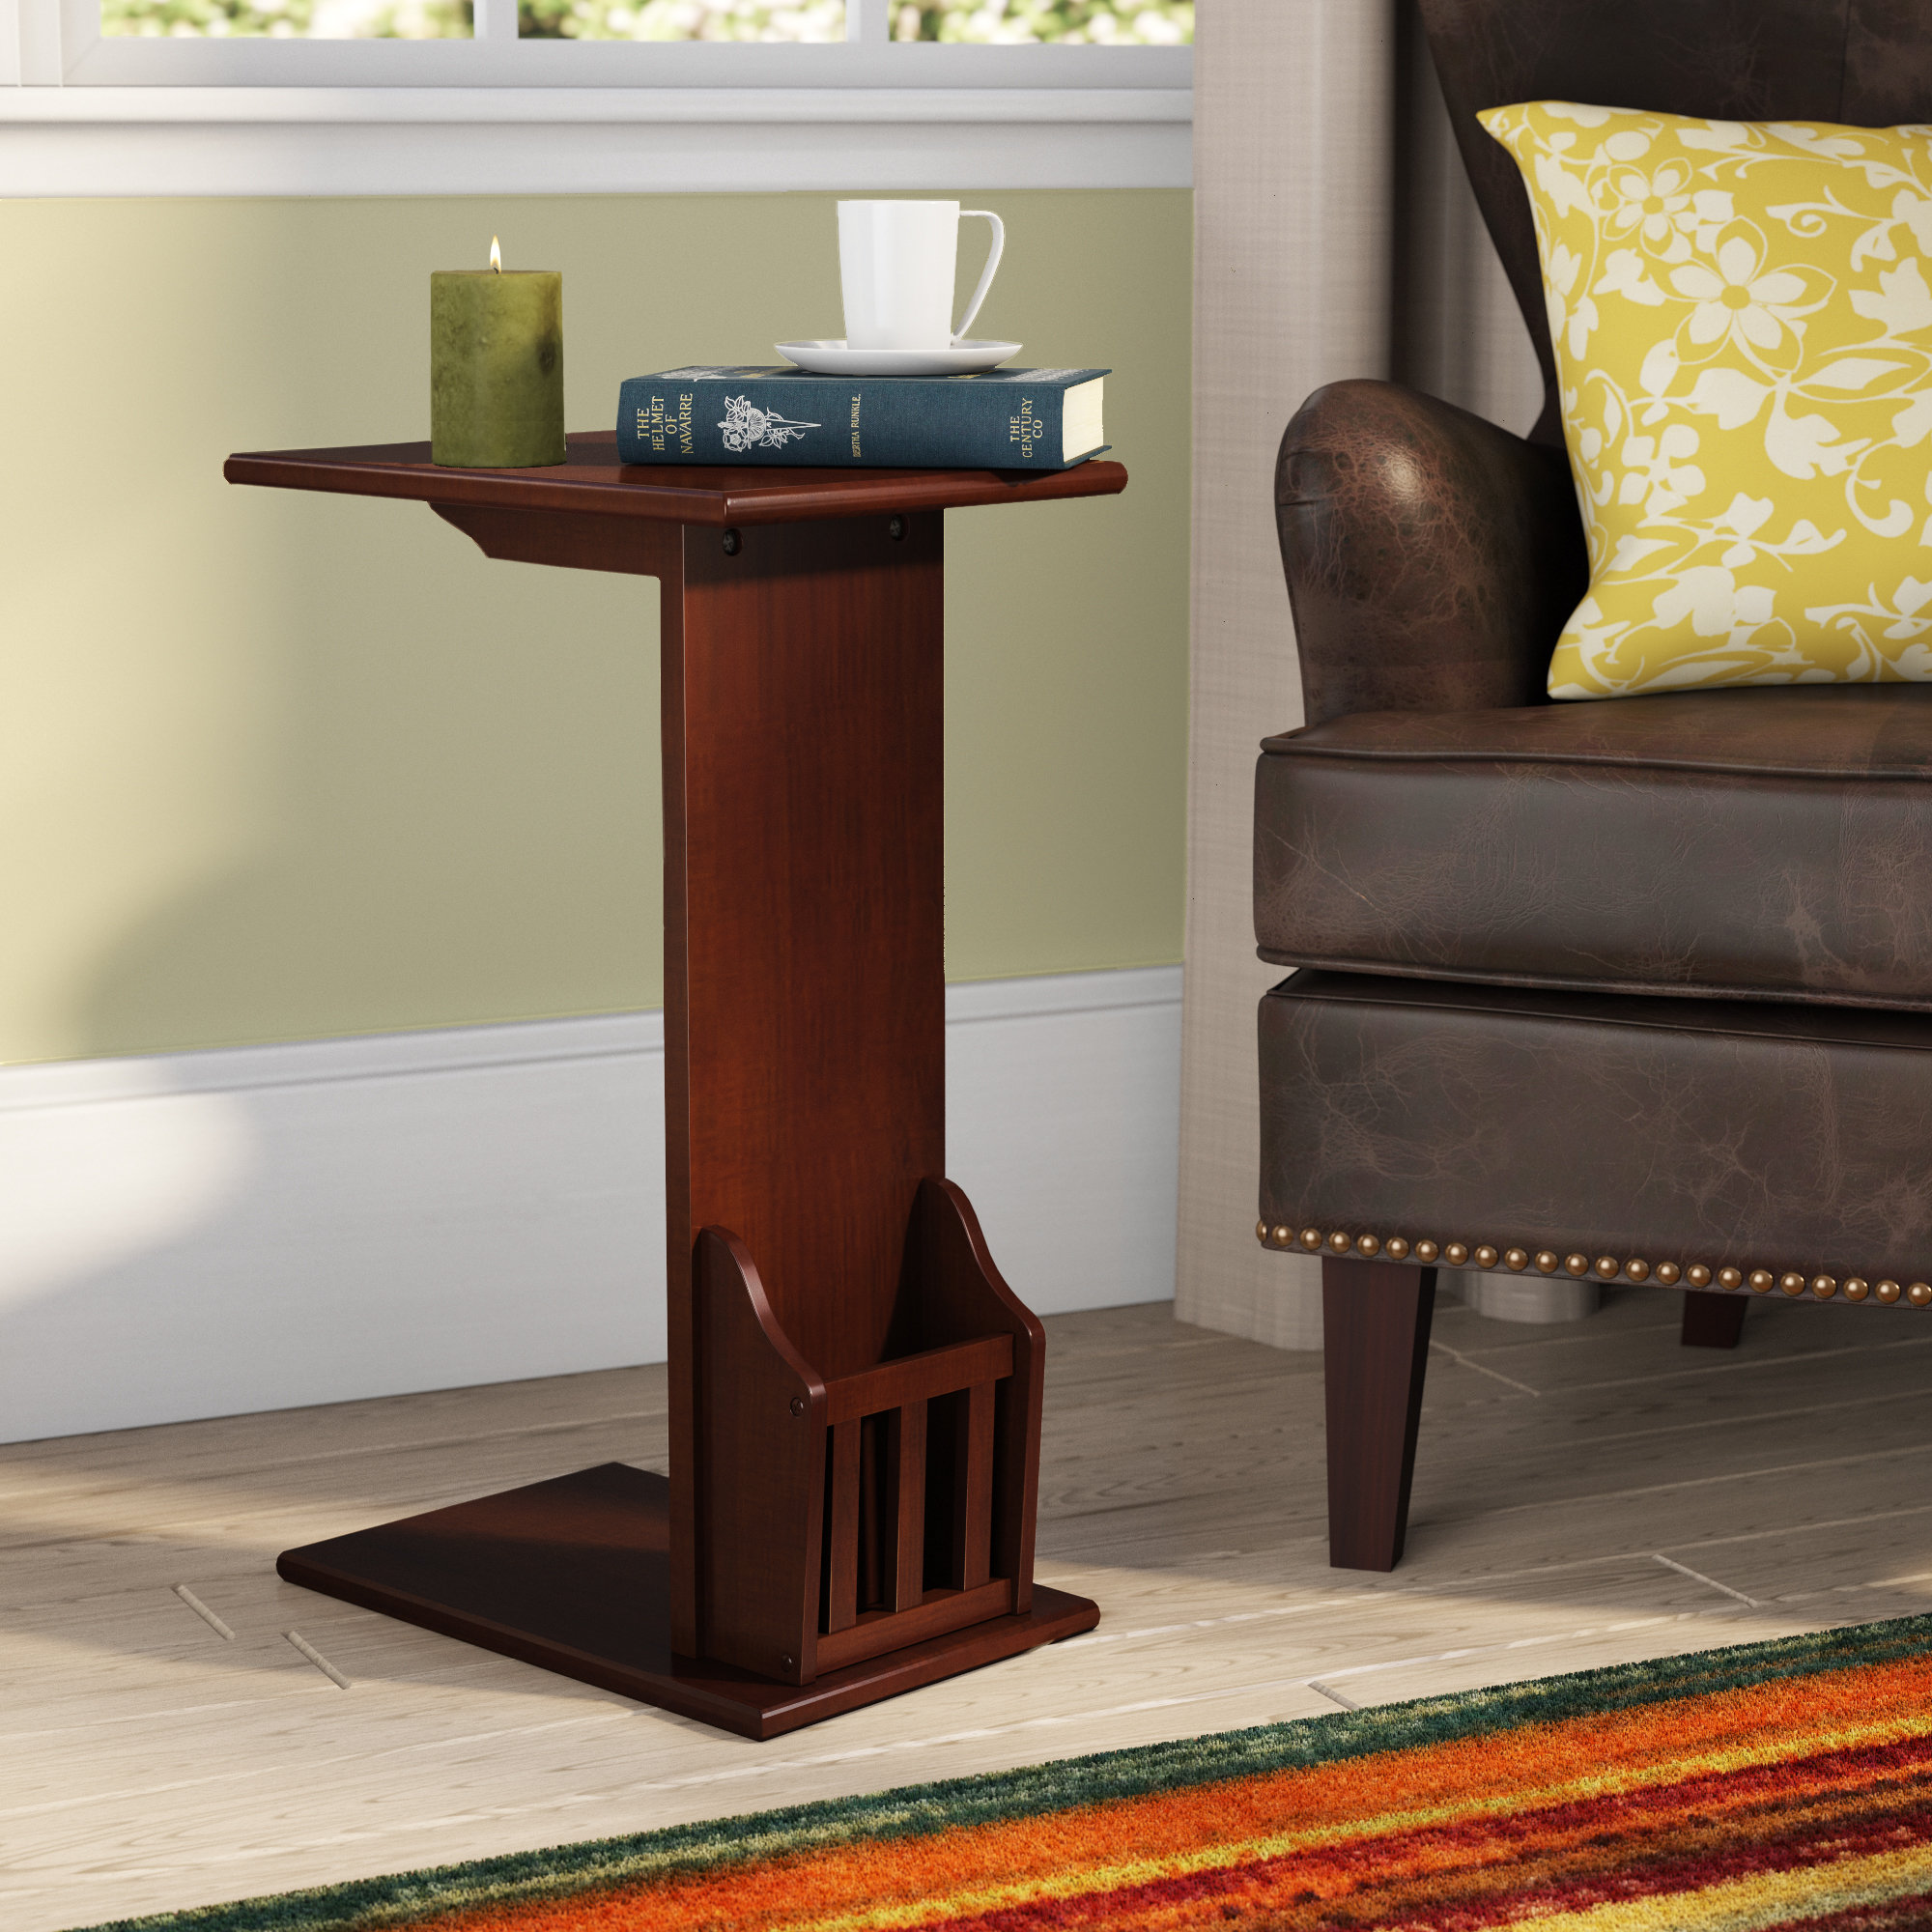 alcott hill gammons end table reviews room essentials accent instructions pier furniture ashley leather recliners ikea small storage sheesham pallet solid wood drop leaf dining